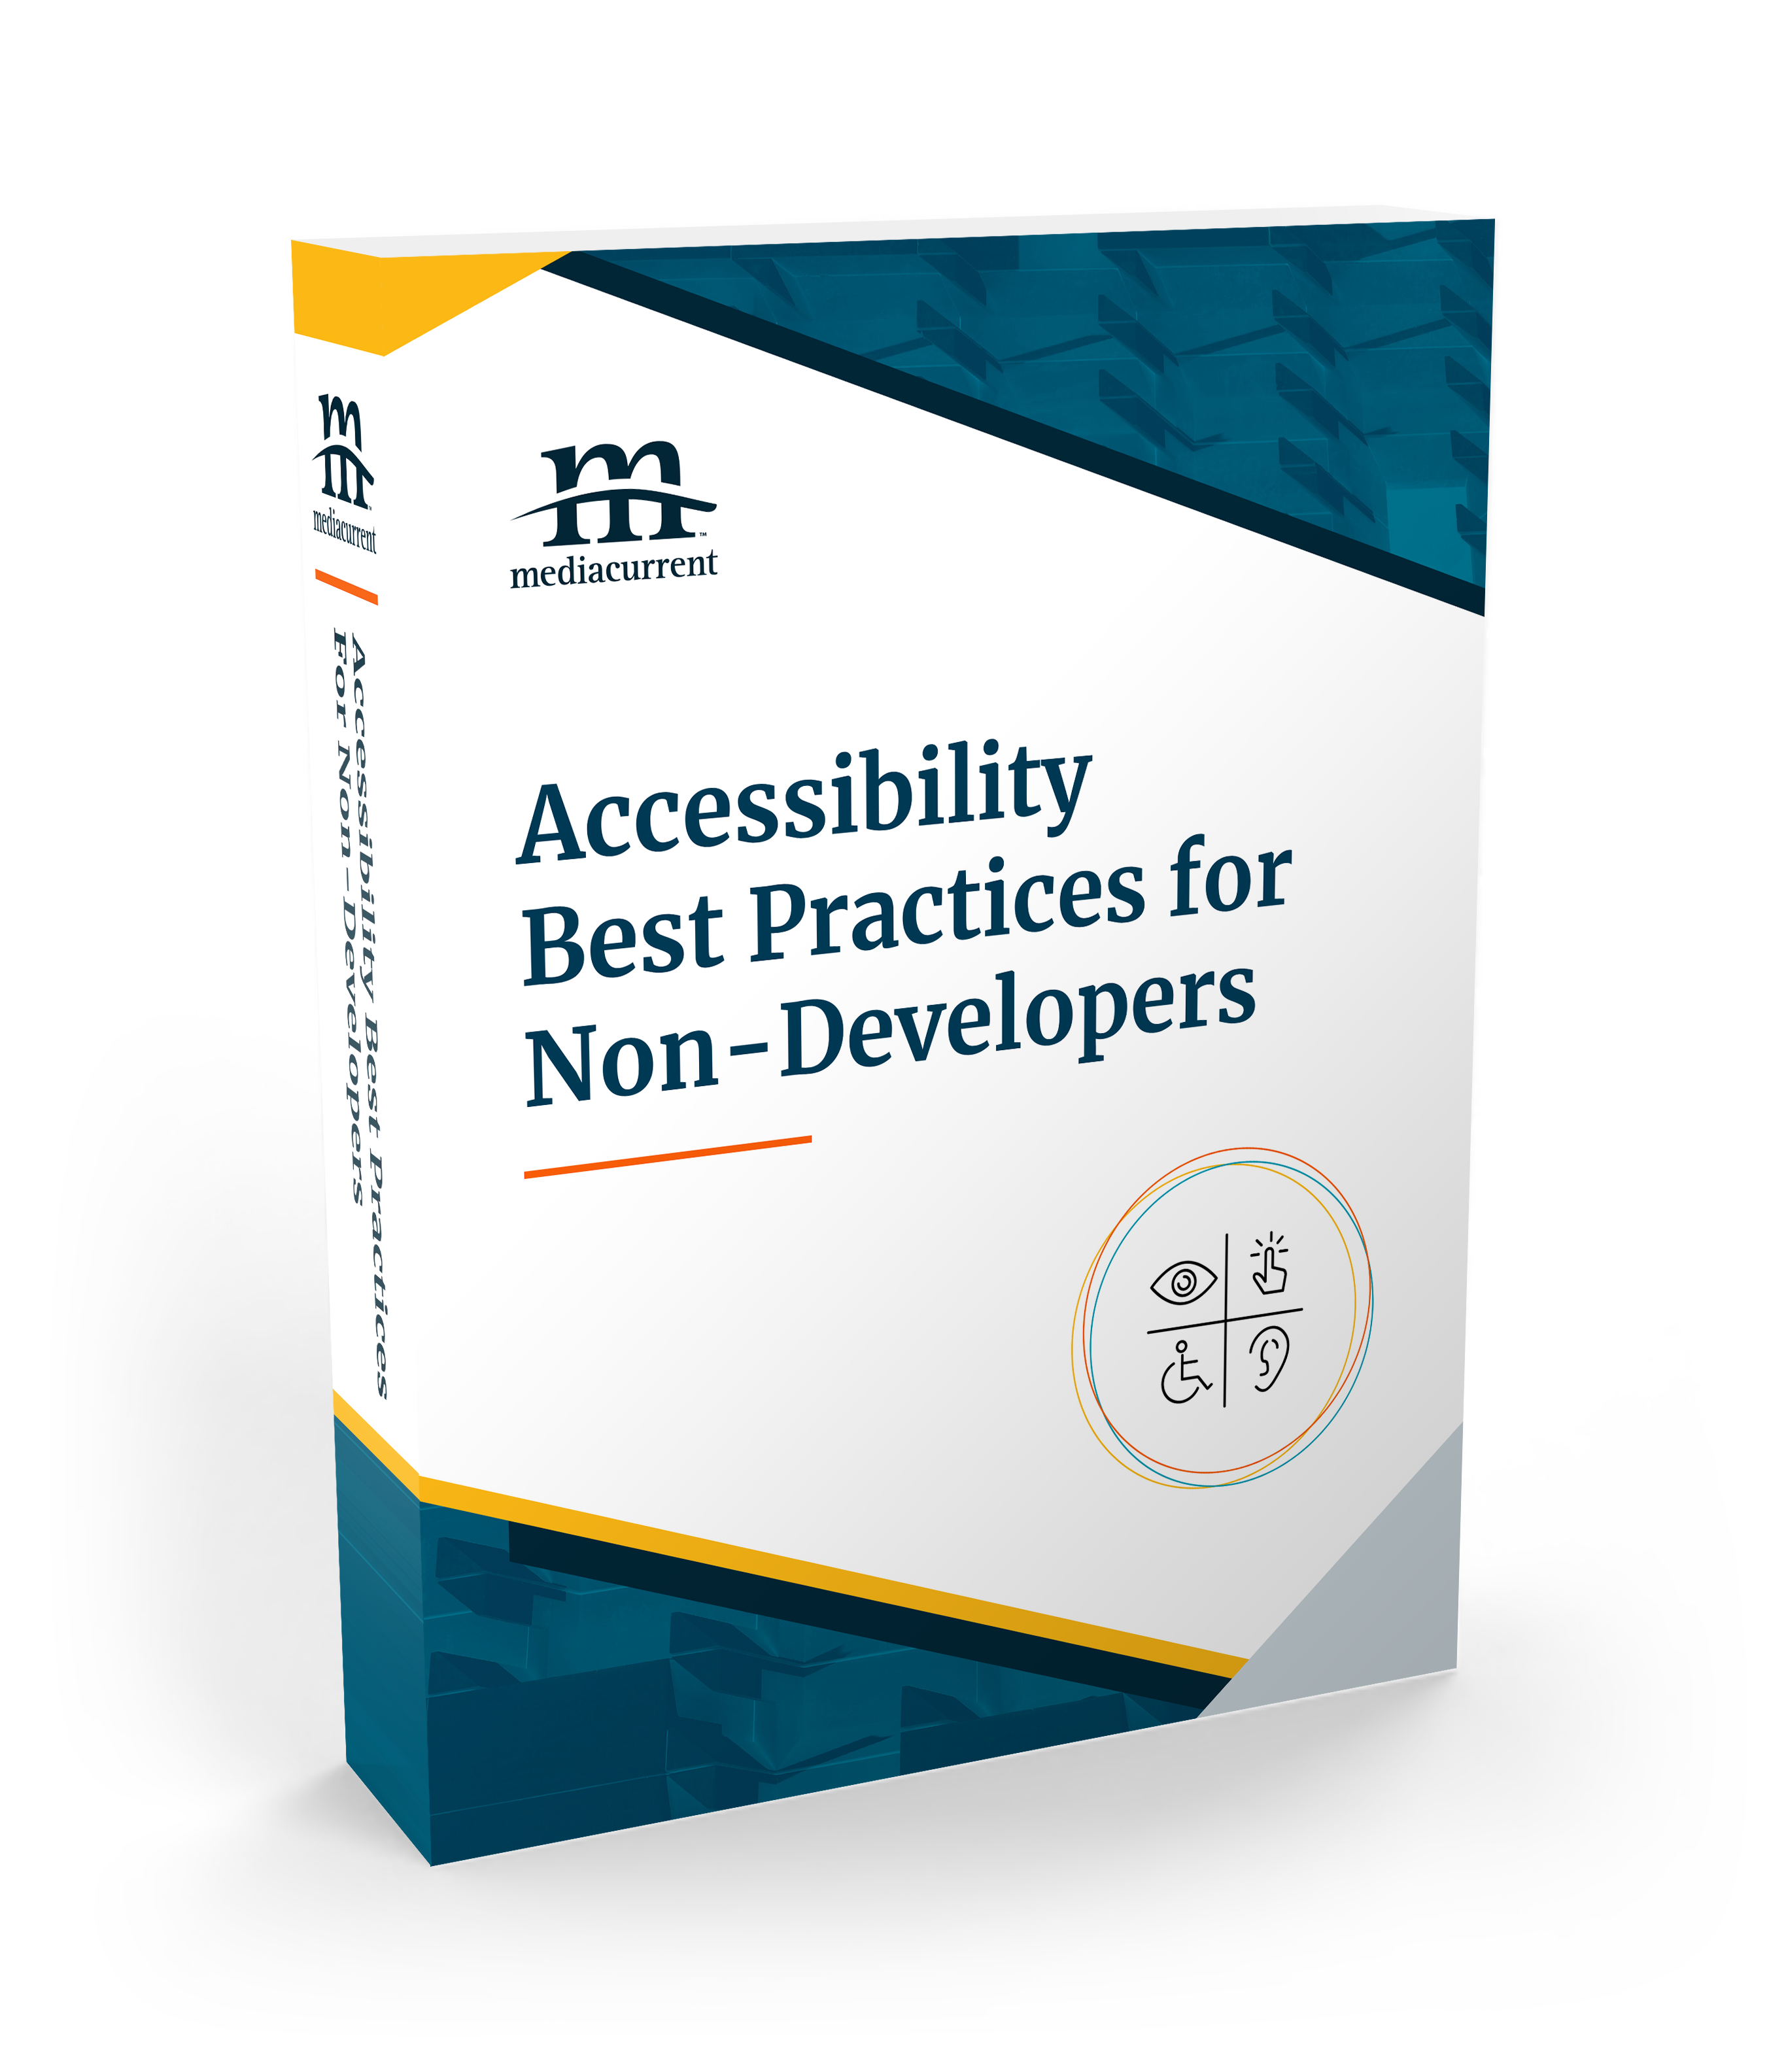 accessibility guide for non-developers ebook cover